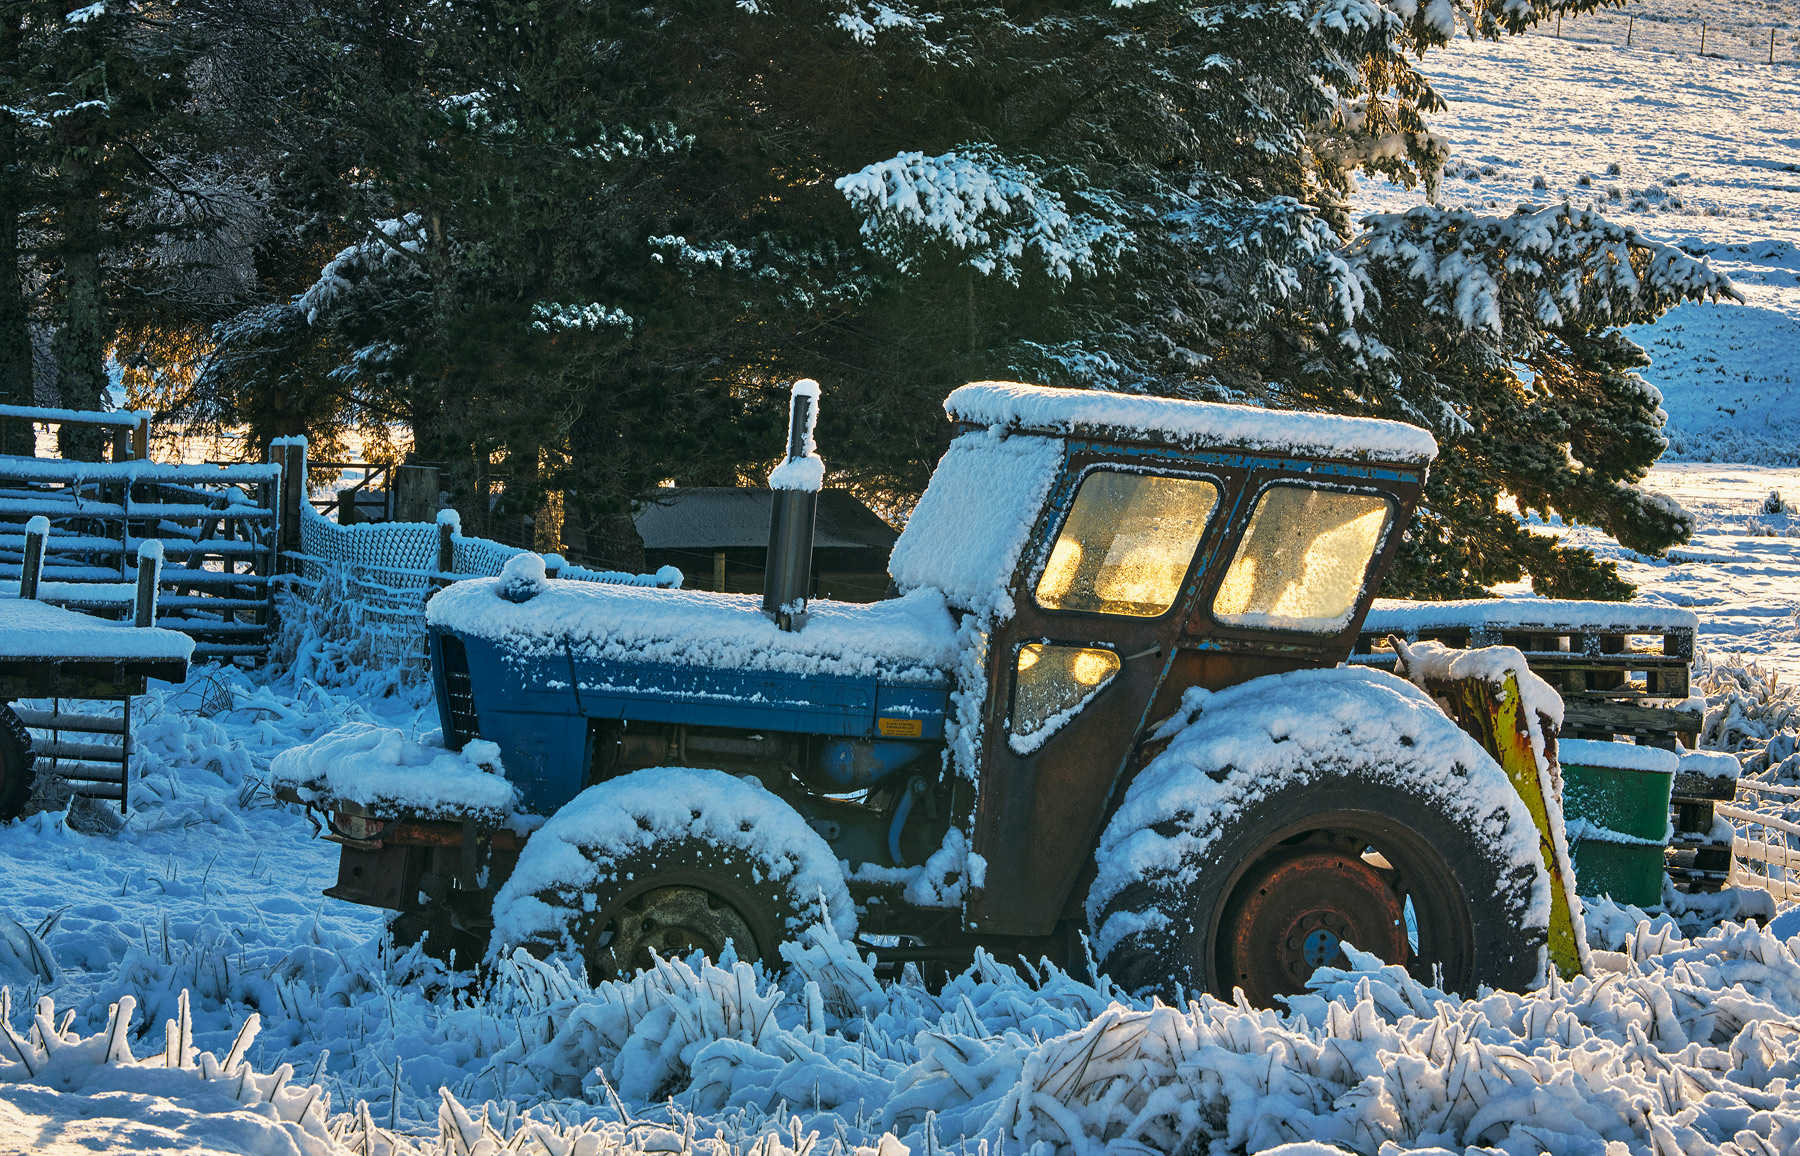 Near by the Crask Inn was this furloughed tractor collecting snow and rust. For a few minutes golden sunlight escaped around...